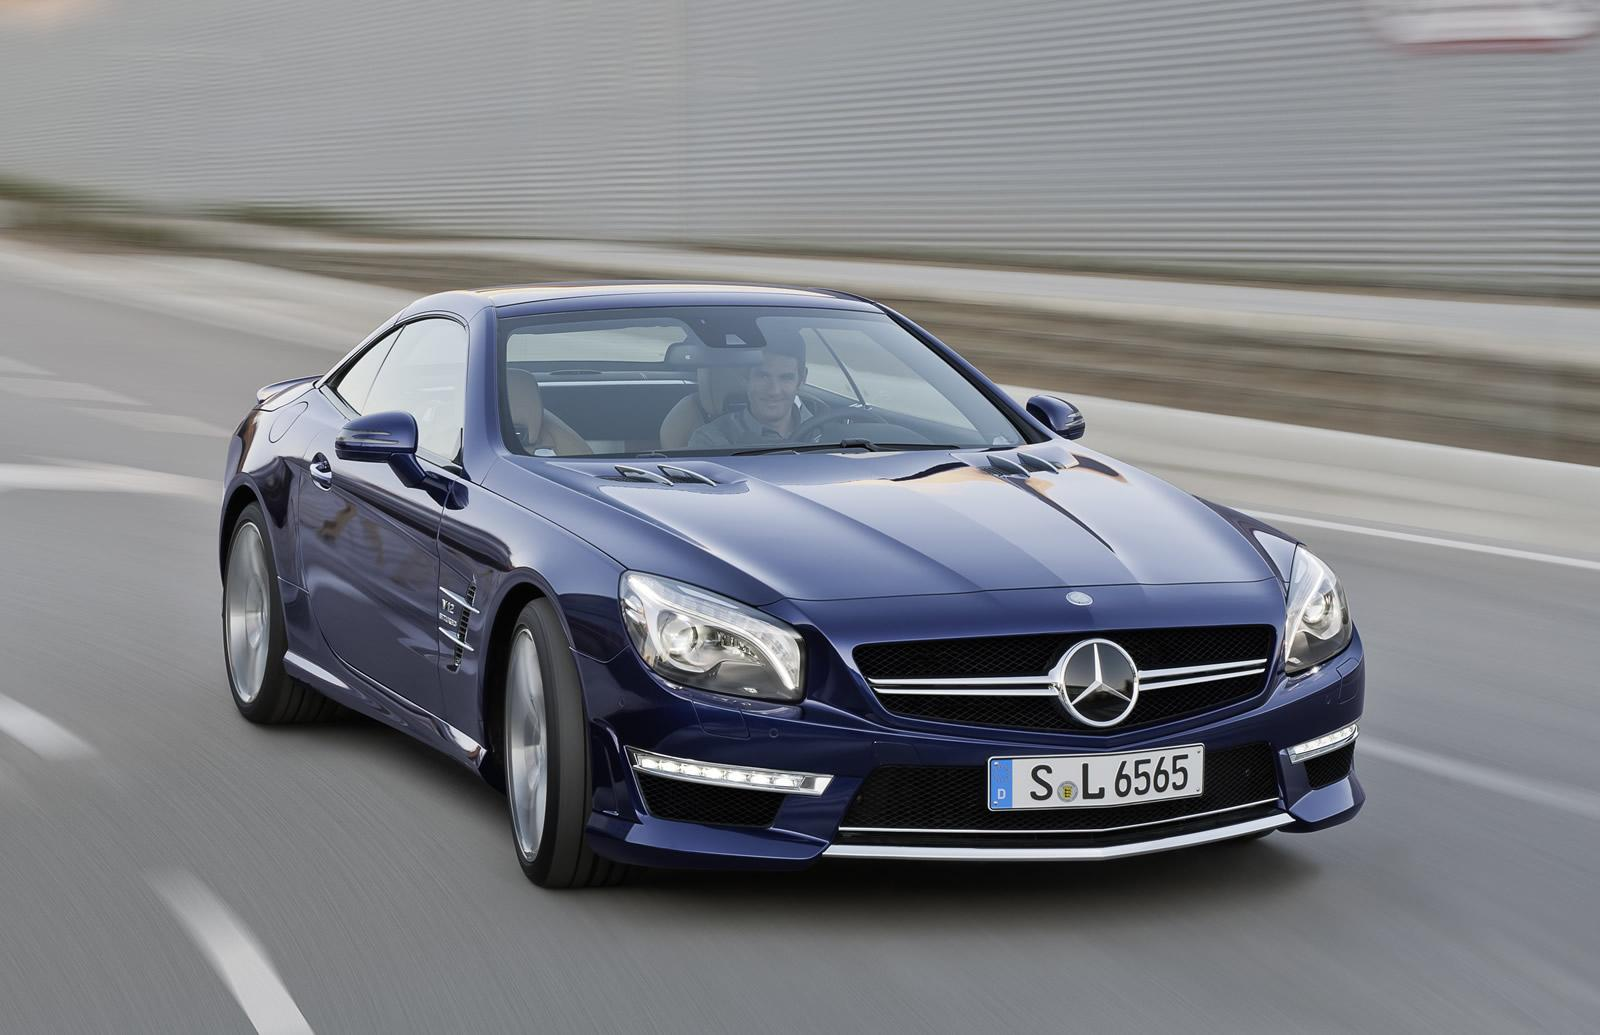 2013 mercedes sl 65 amg revealed v12 biturbo autoevolution On mercedes benz amg v12 biturbo